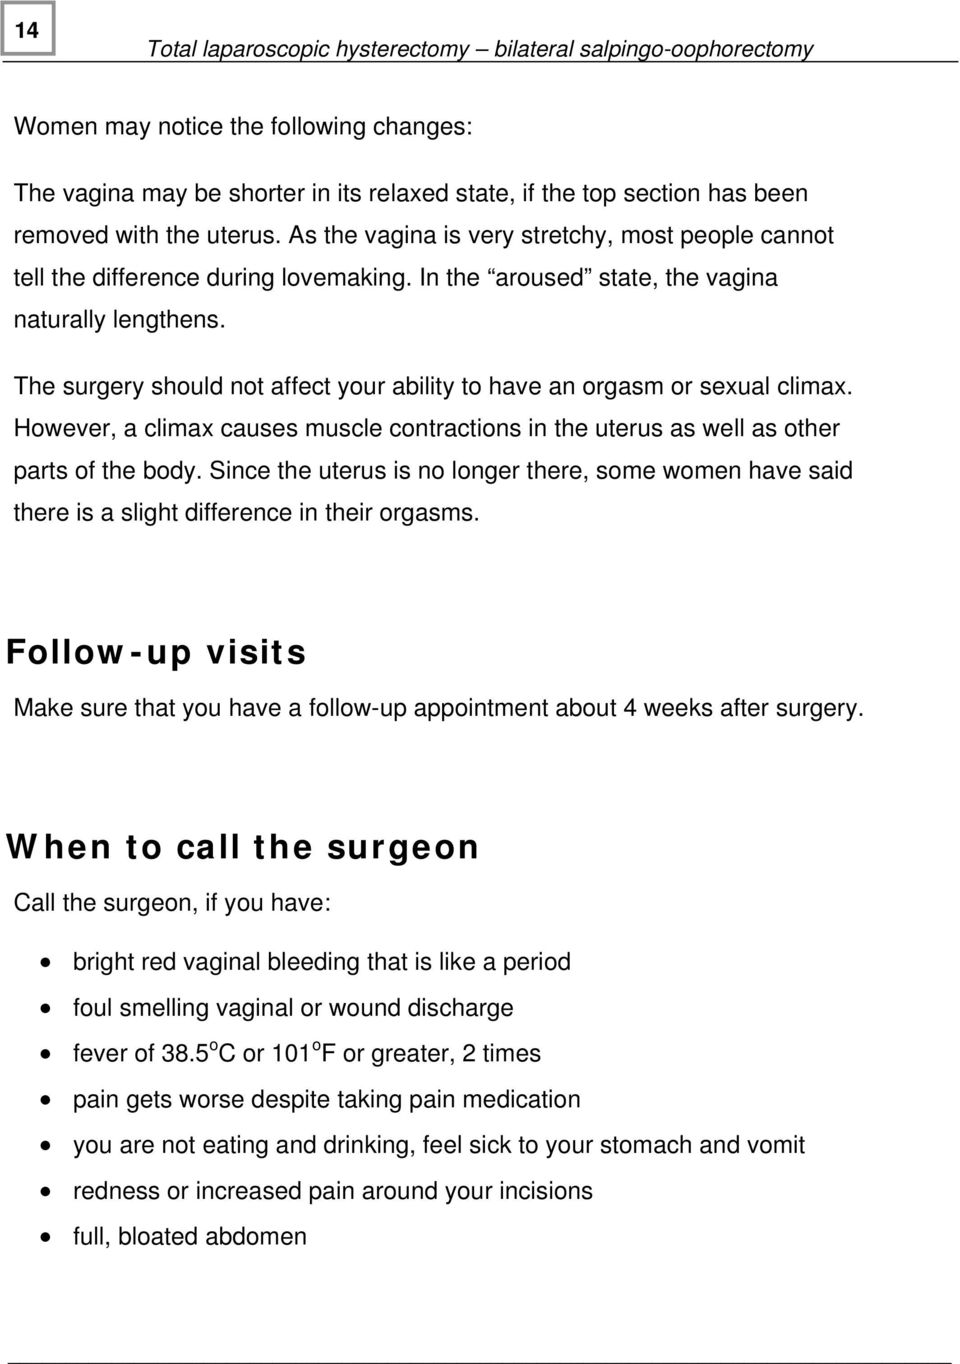 The surgery should not affect your ability to have an orgasm or sexual climax. However, a climax causes muscle contractions in the uterus as well as other parts of the body.